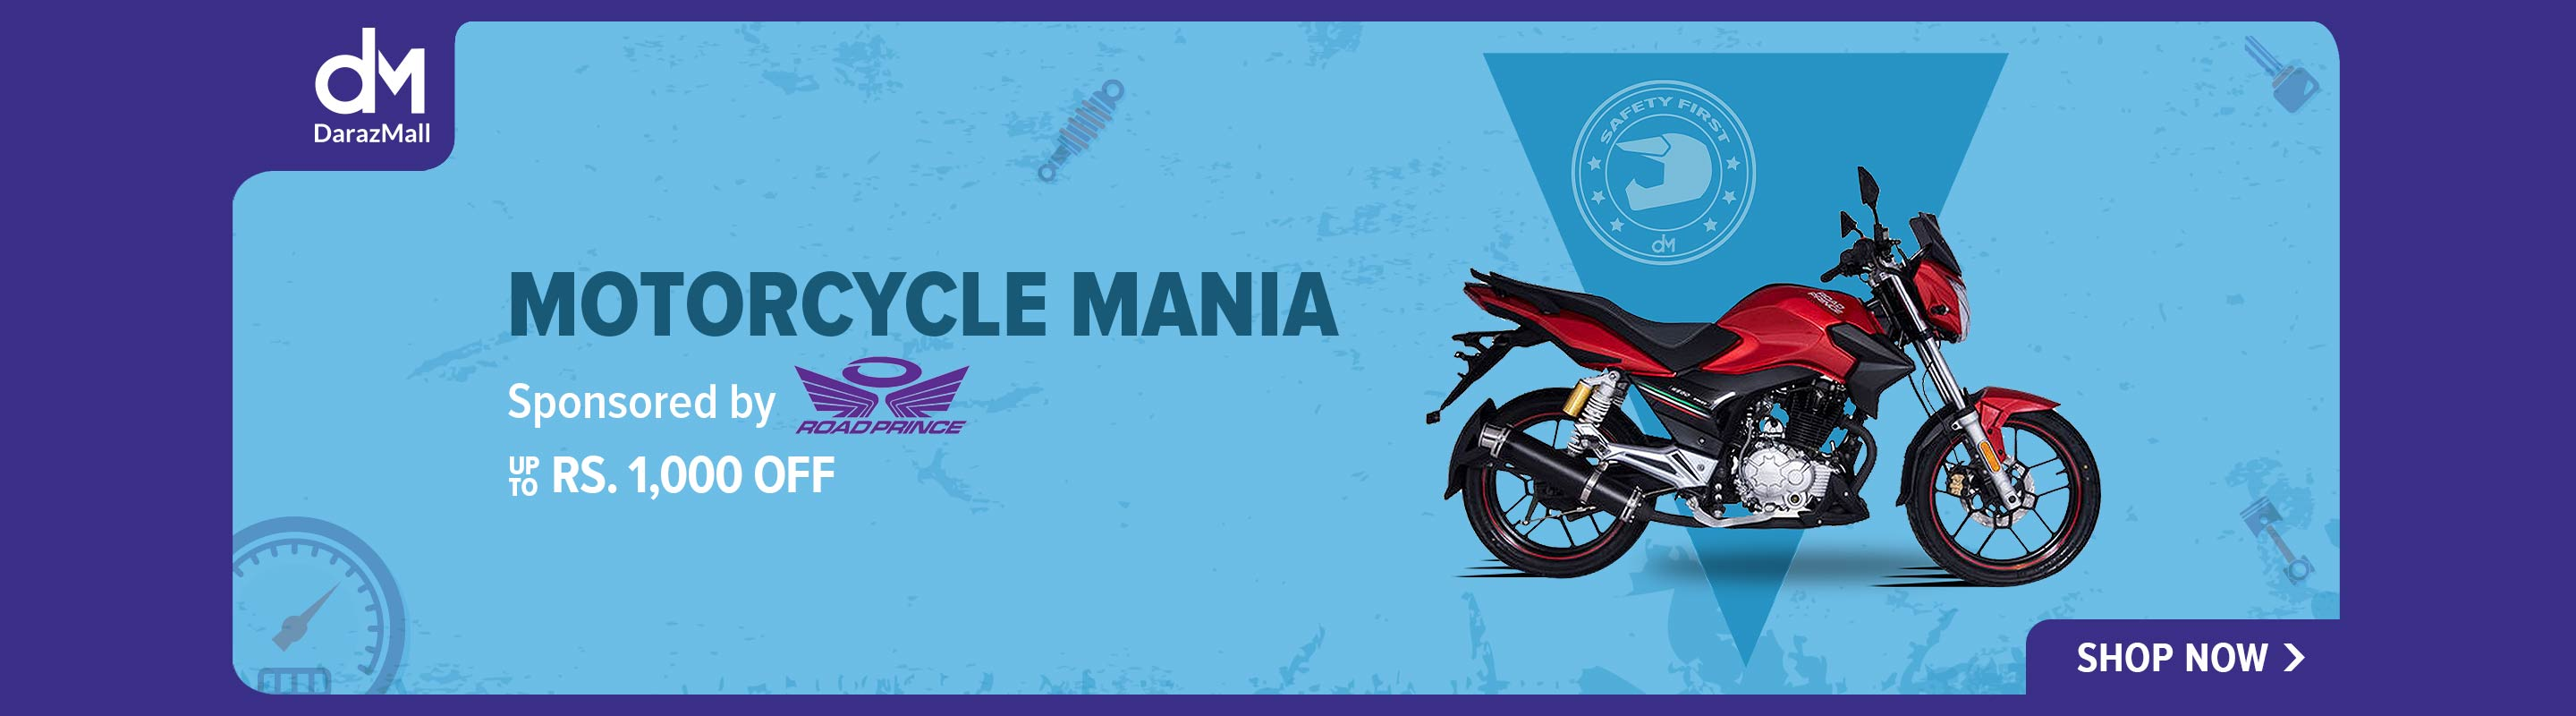 Motorcycle Mania